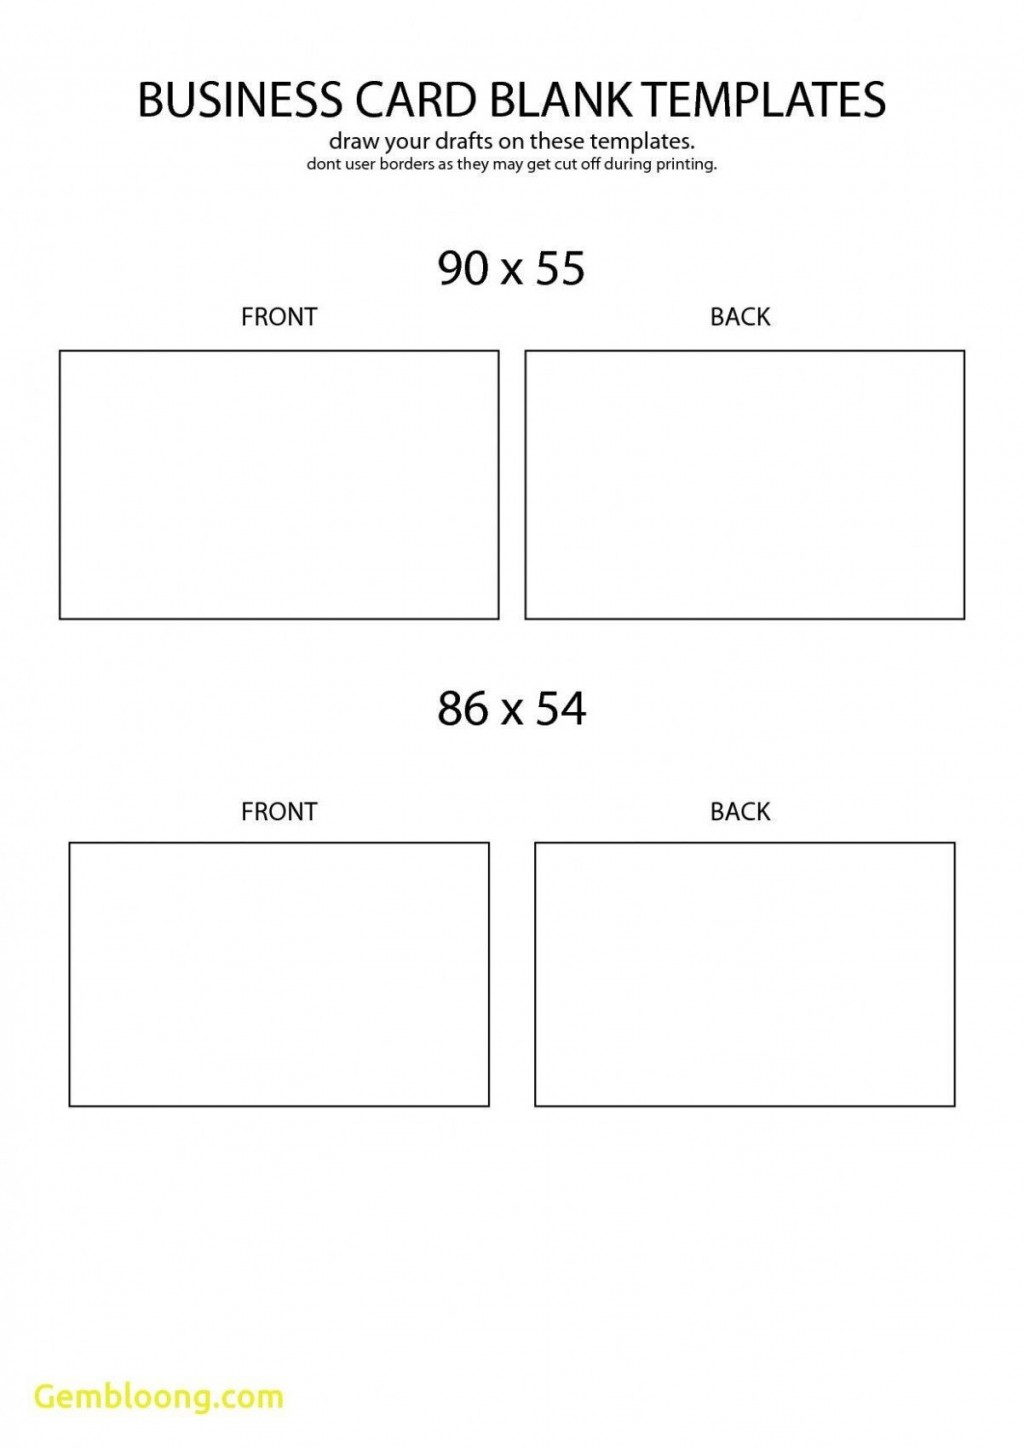 004 Wondrou Free Simple Busines Card Template Word High Resolution Large